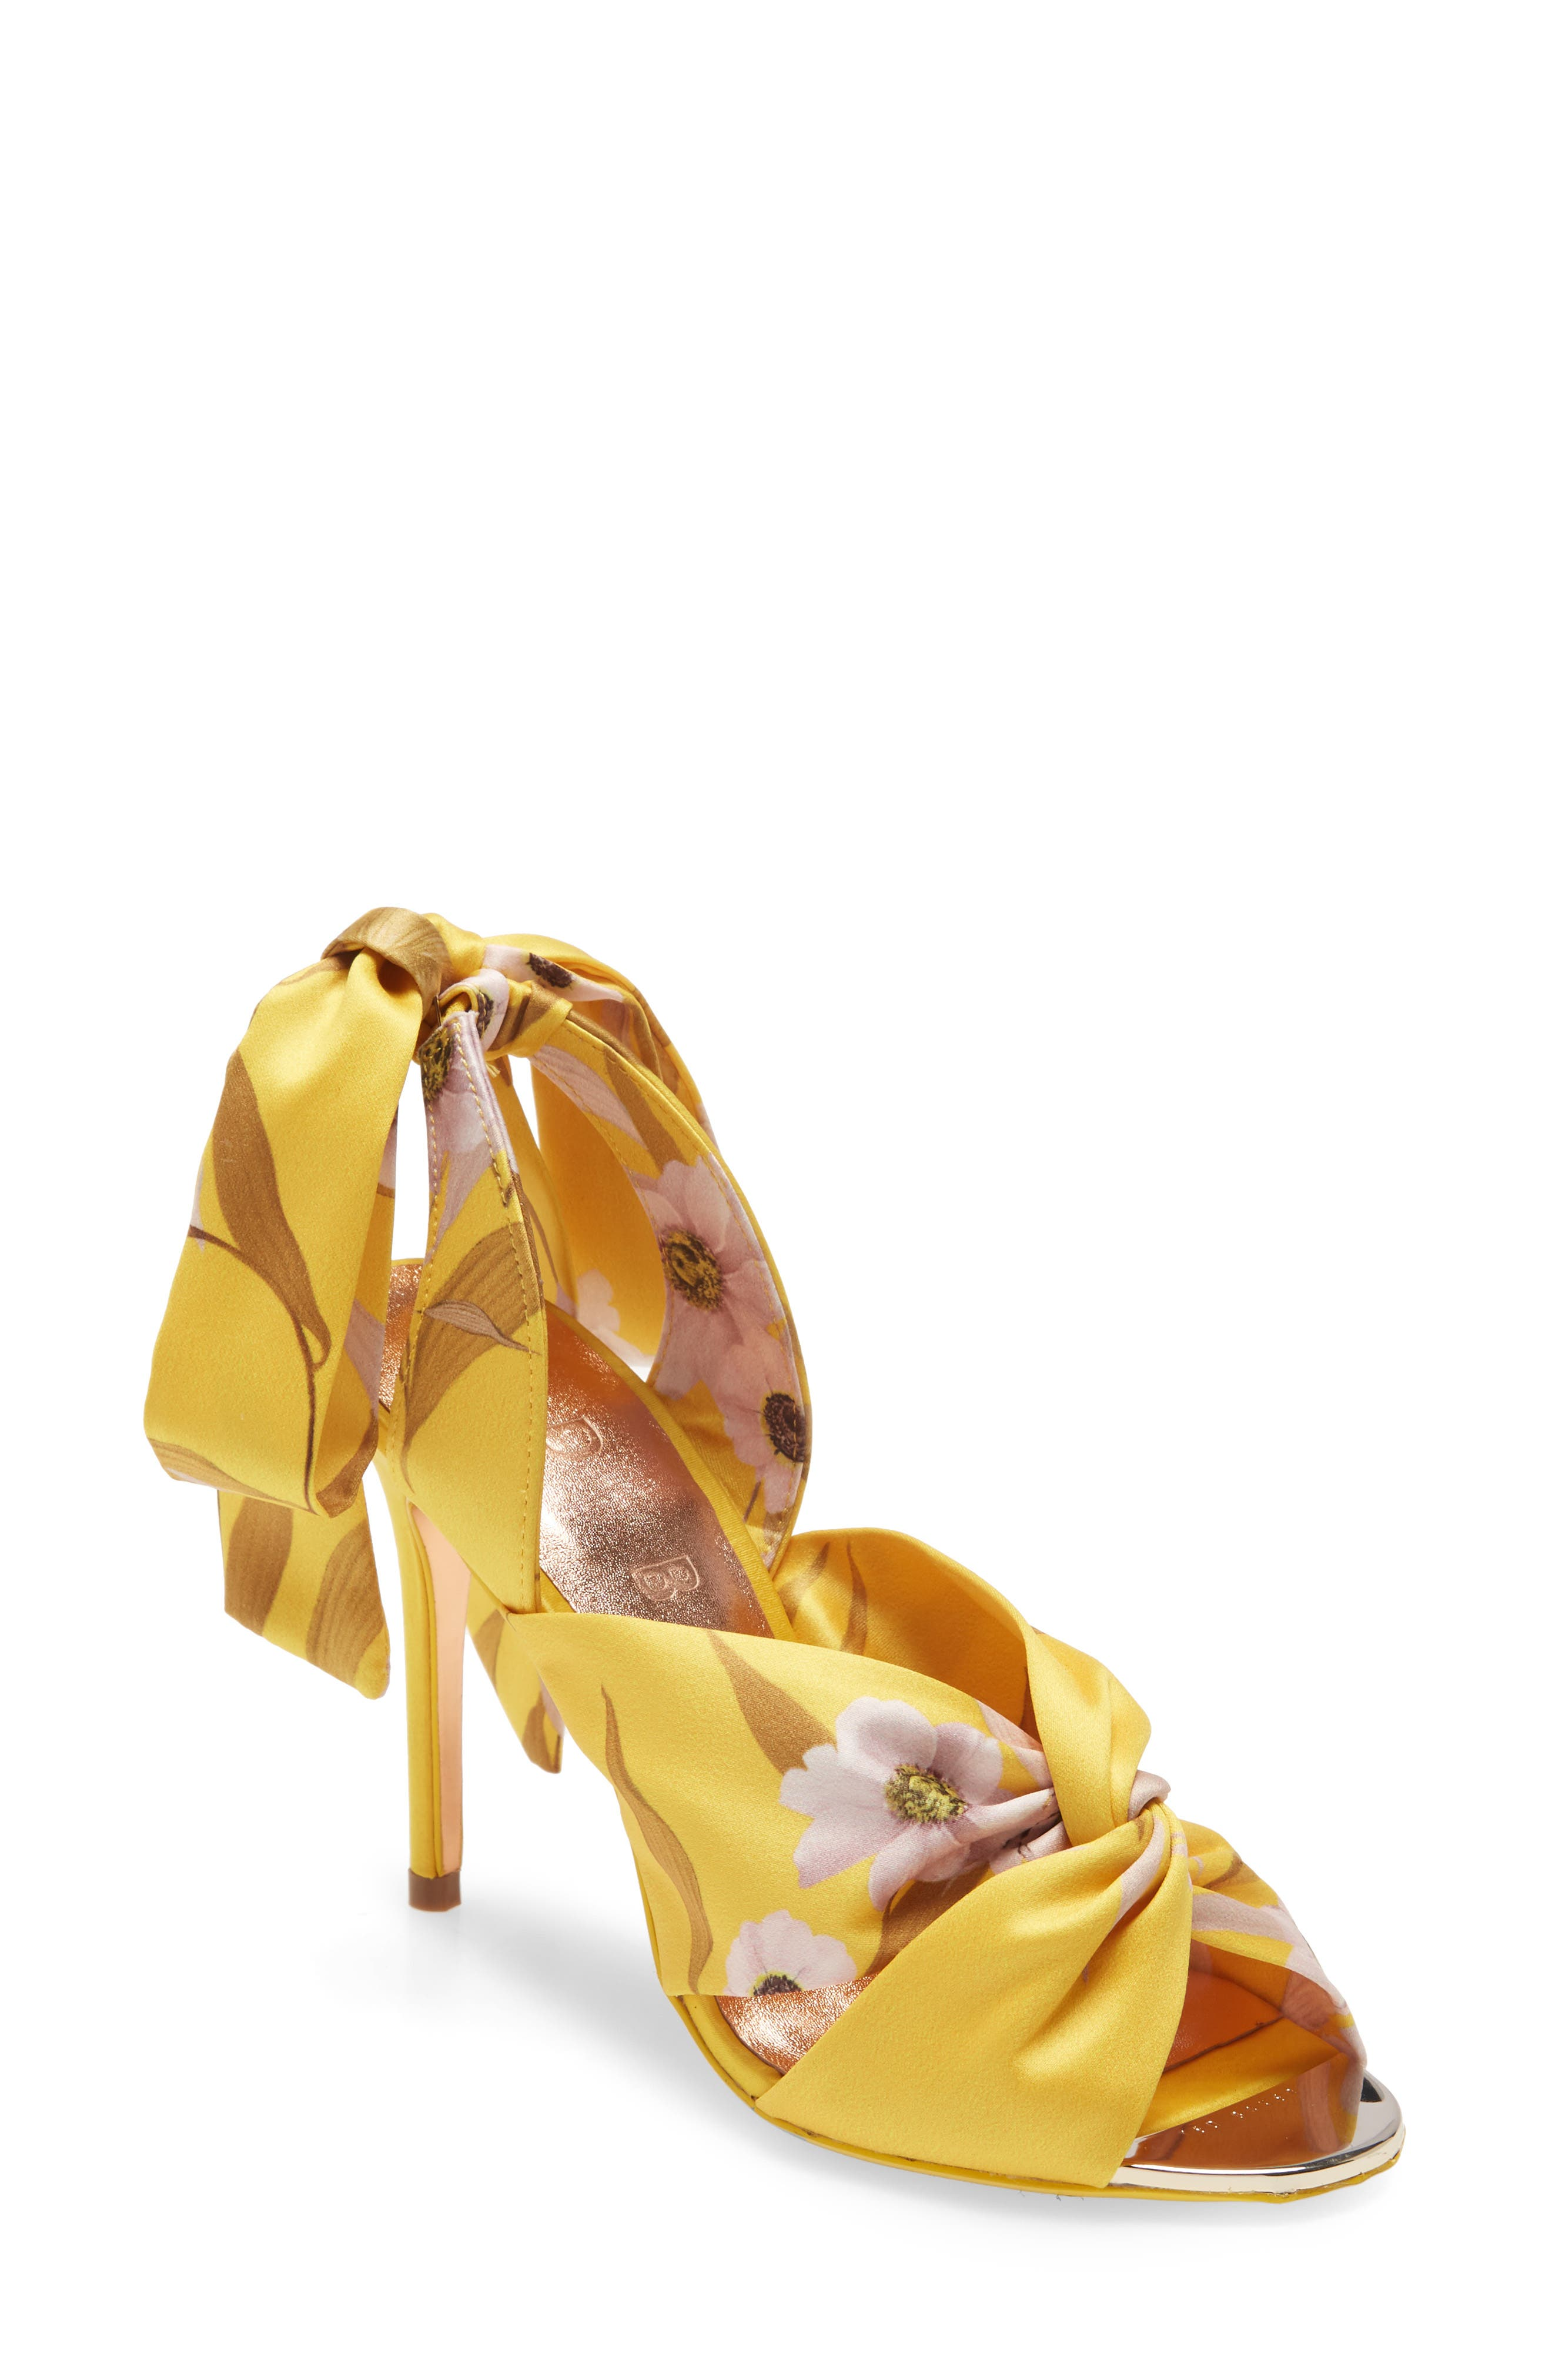 Women's Yellow Ted Baker London Shoes